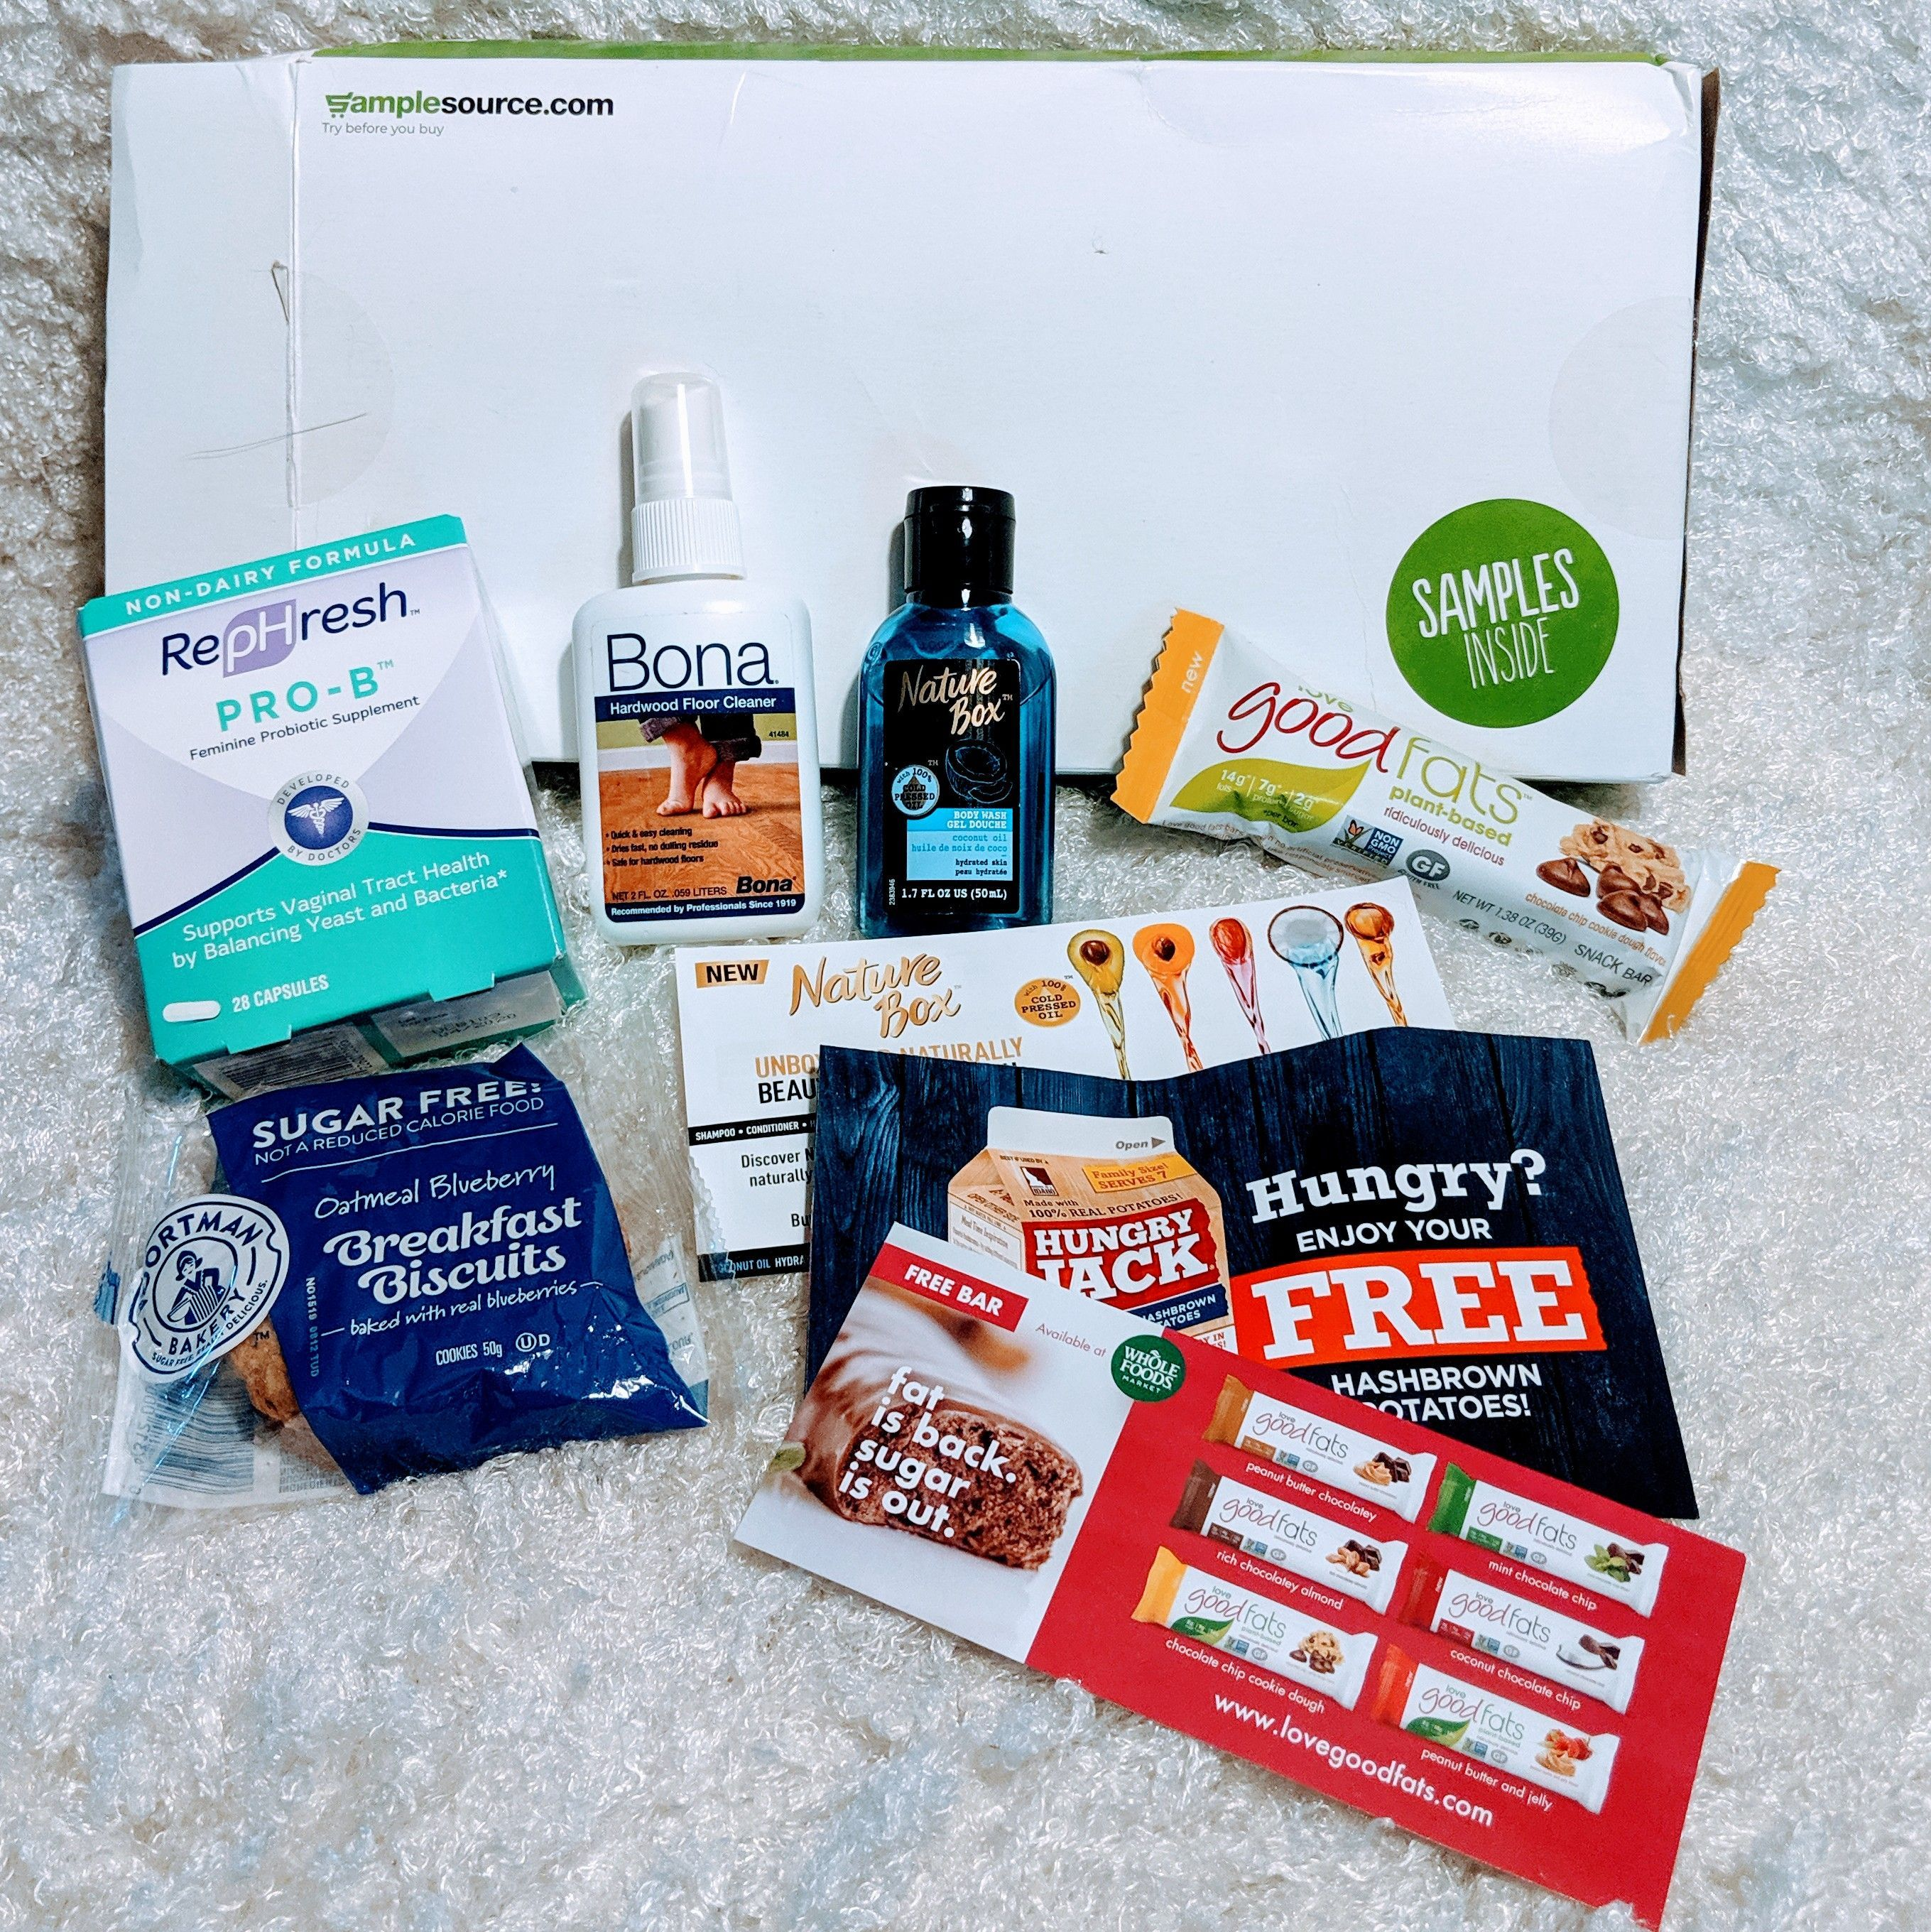 Got My Sample Source Box Filled With Absolutely Free Samples To